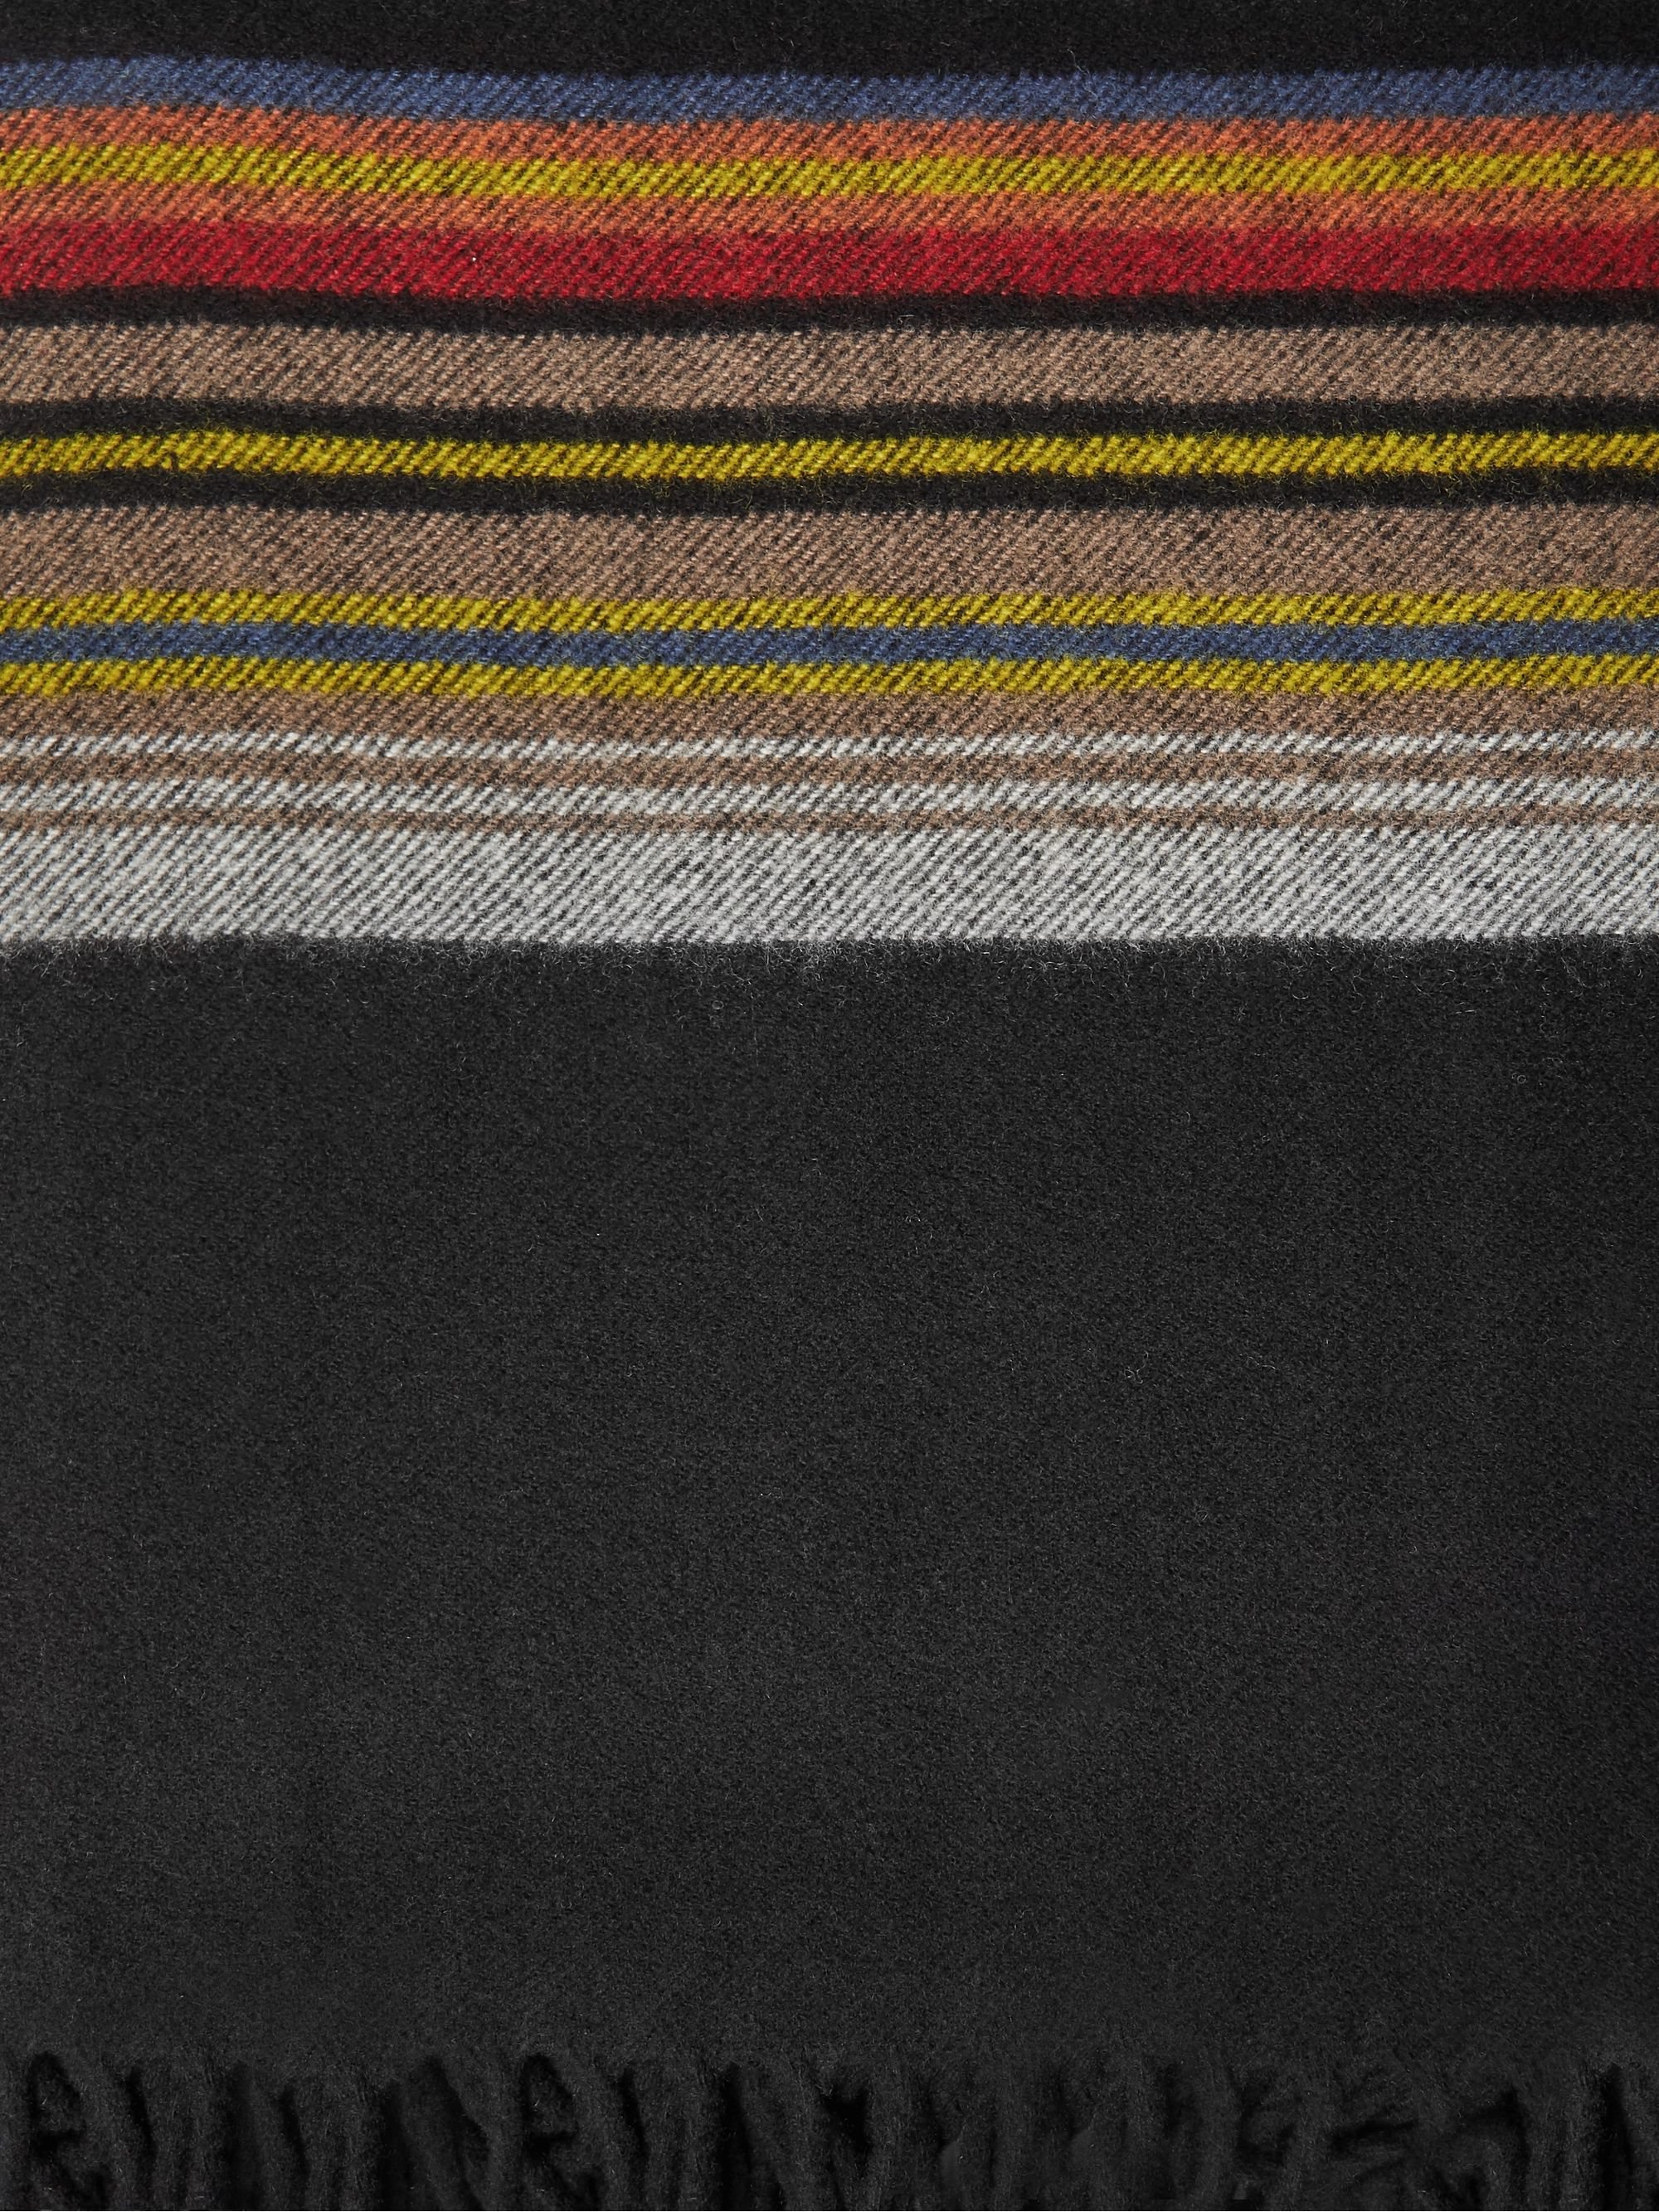 Pendleton 5th Avenue Fringed Wool-Jacquard Blanket